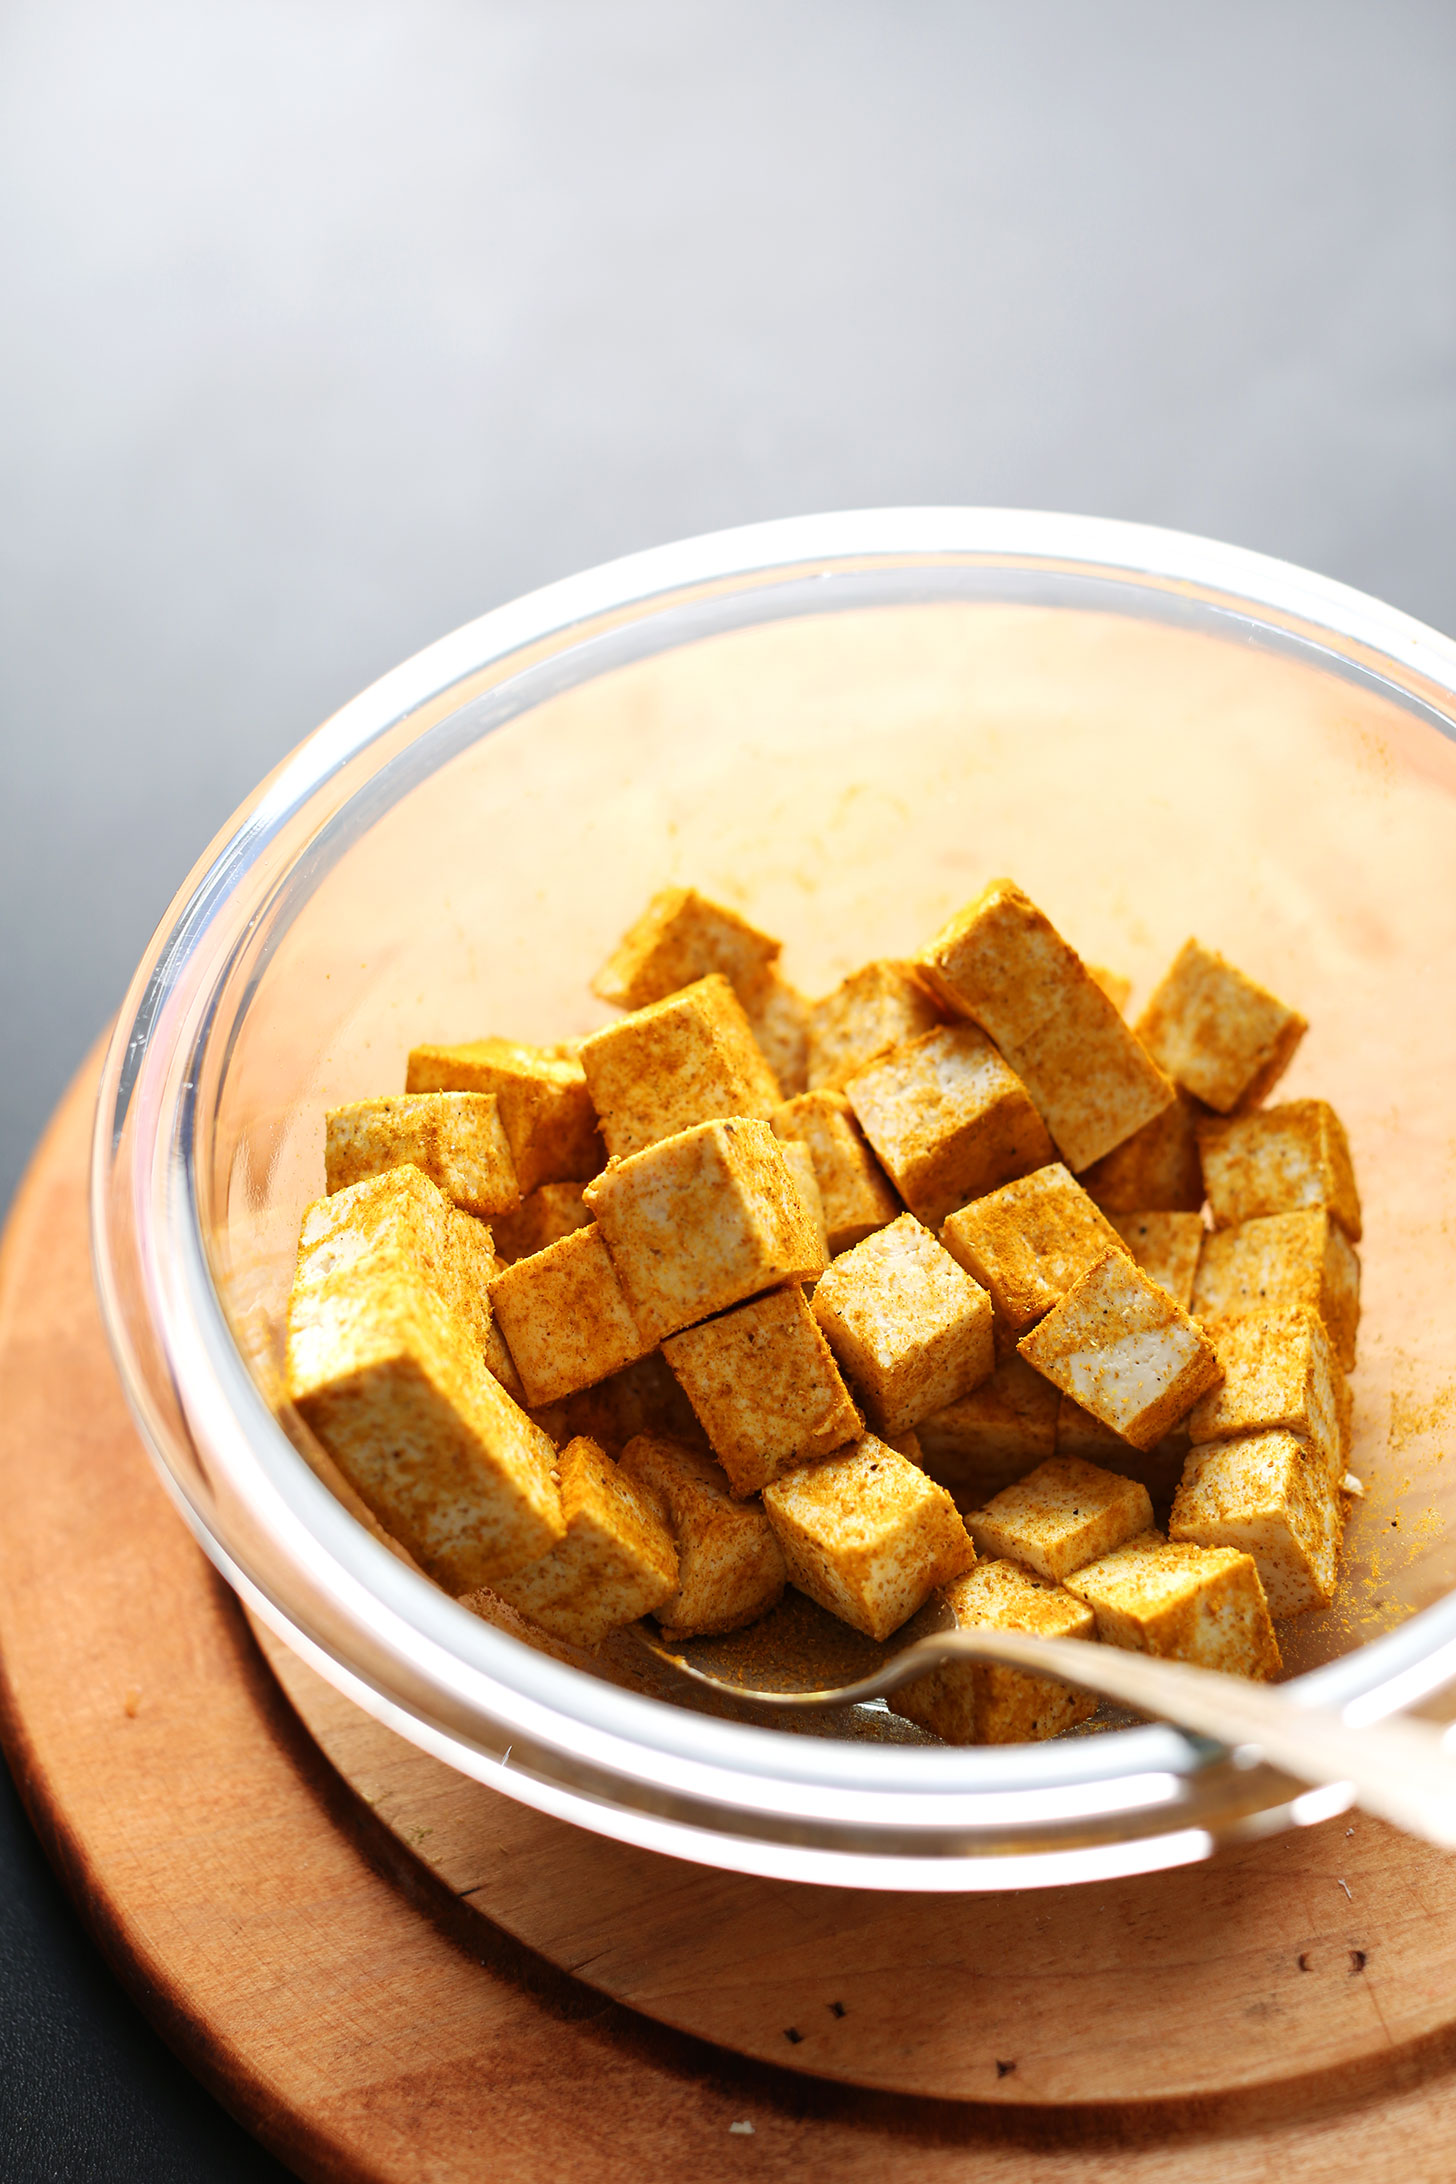 Cubed tofu tossed in curry powder in a glass mixing bowl